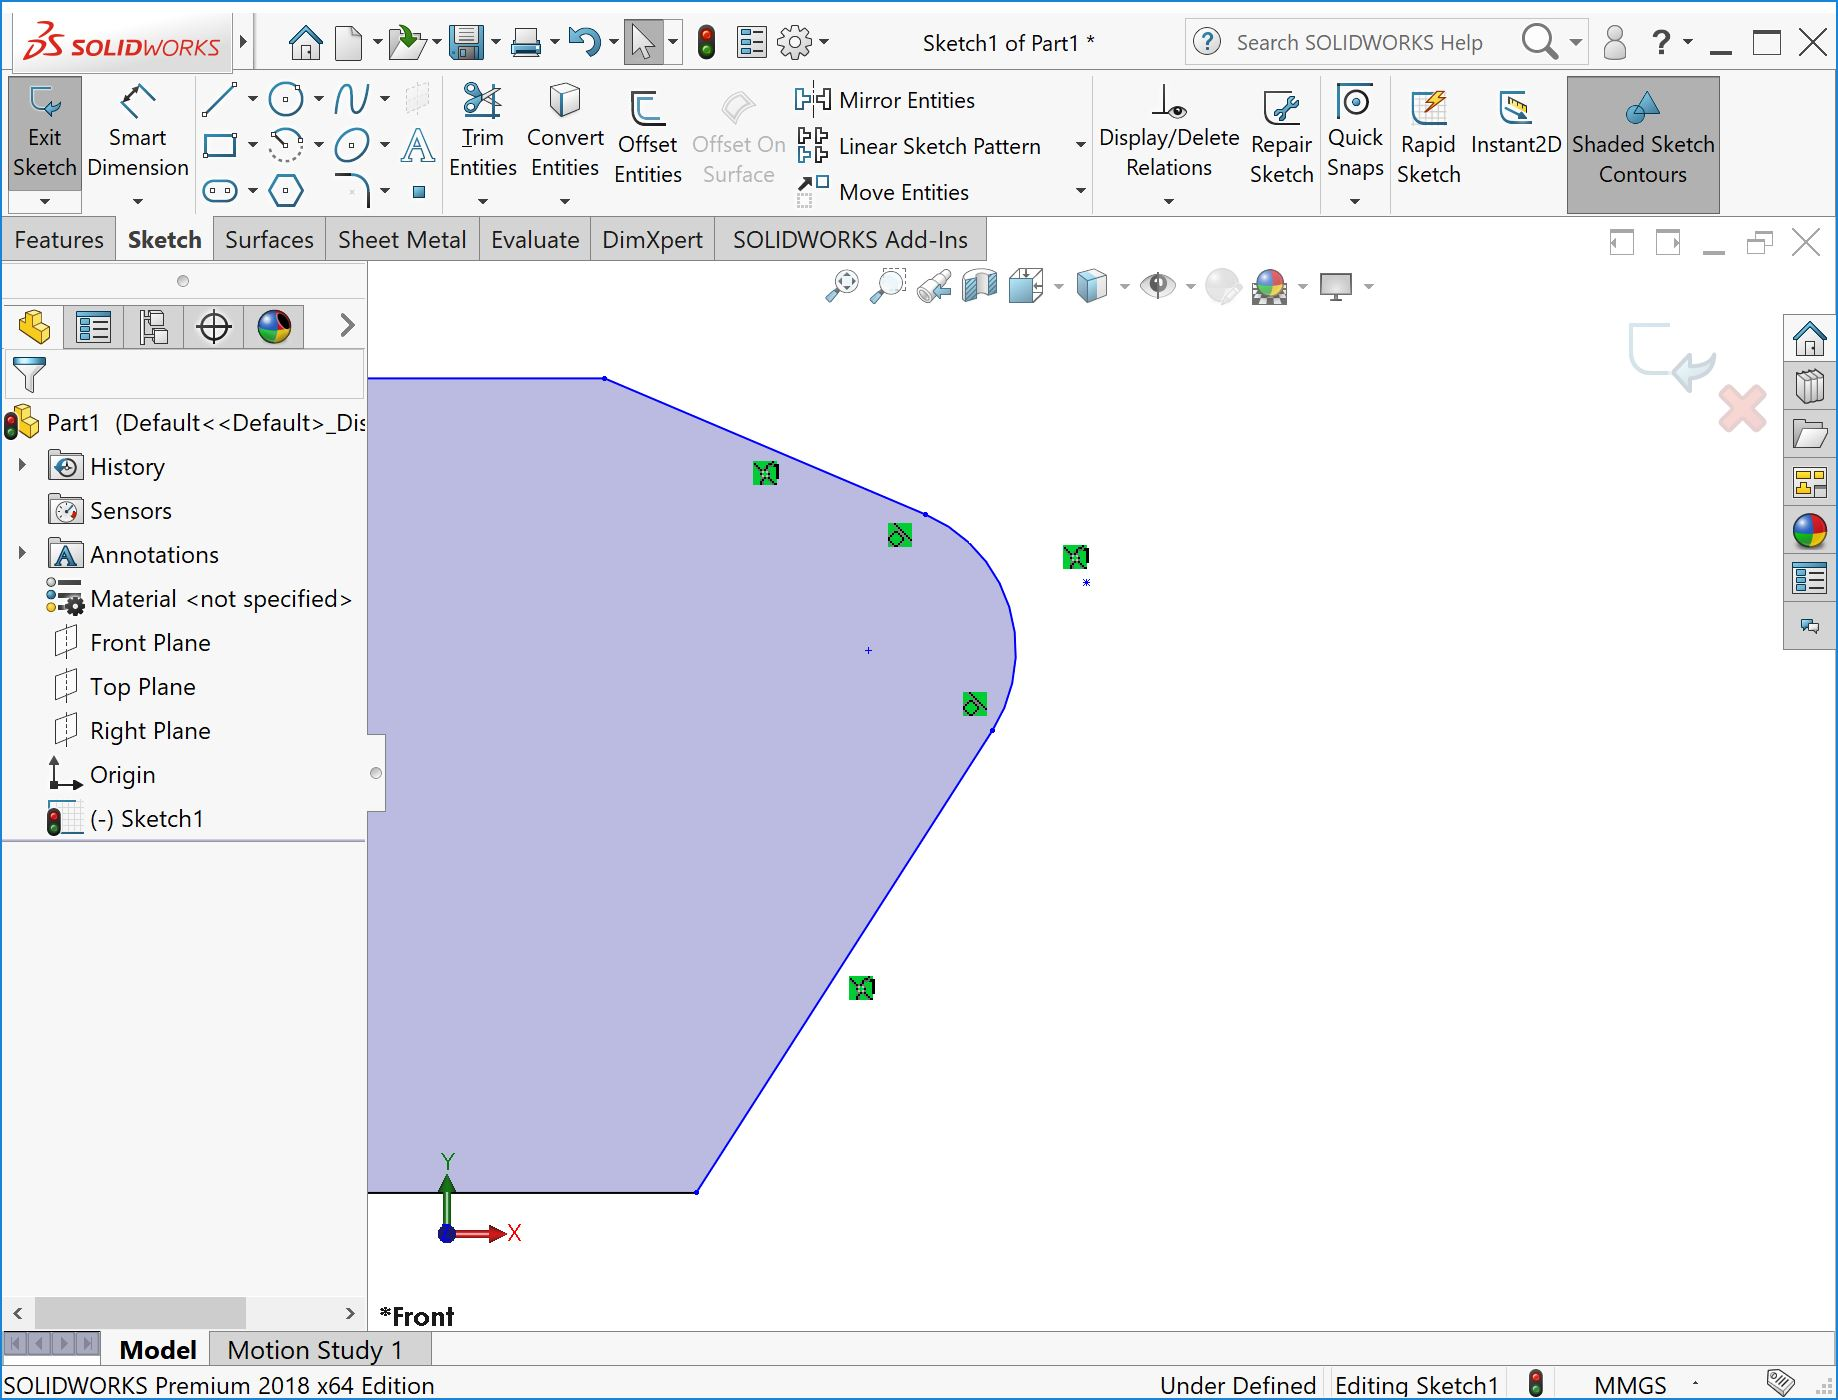 How to Insert SOLIDWORKS Virtual Sharps in a Sketch or Drawing